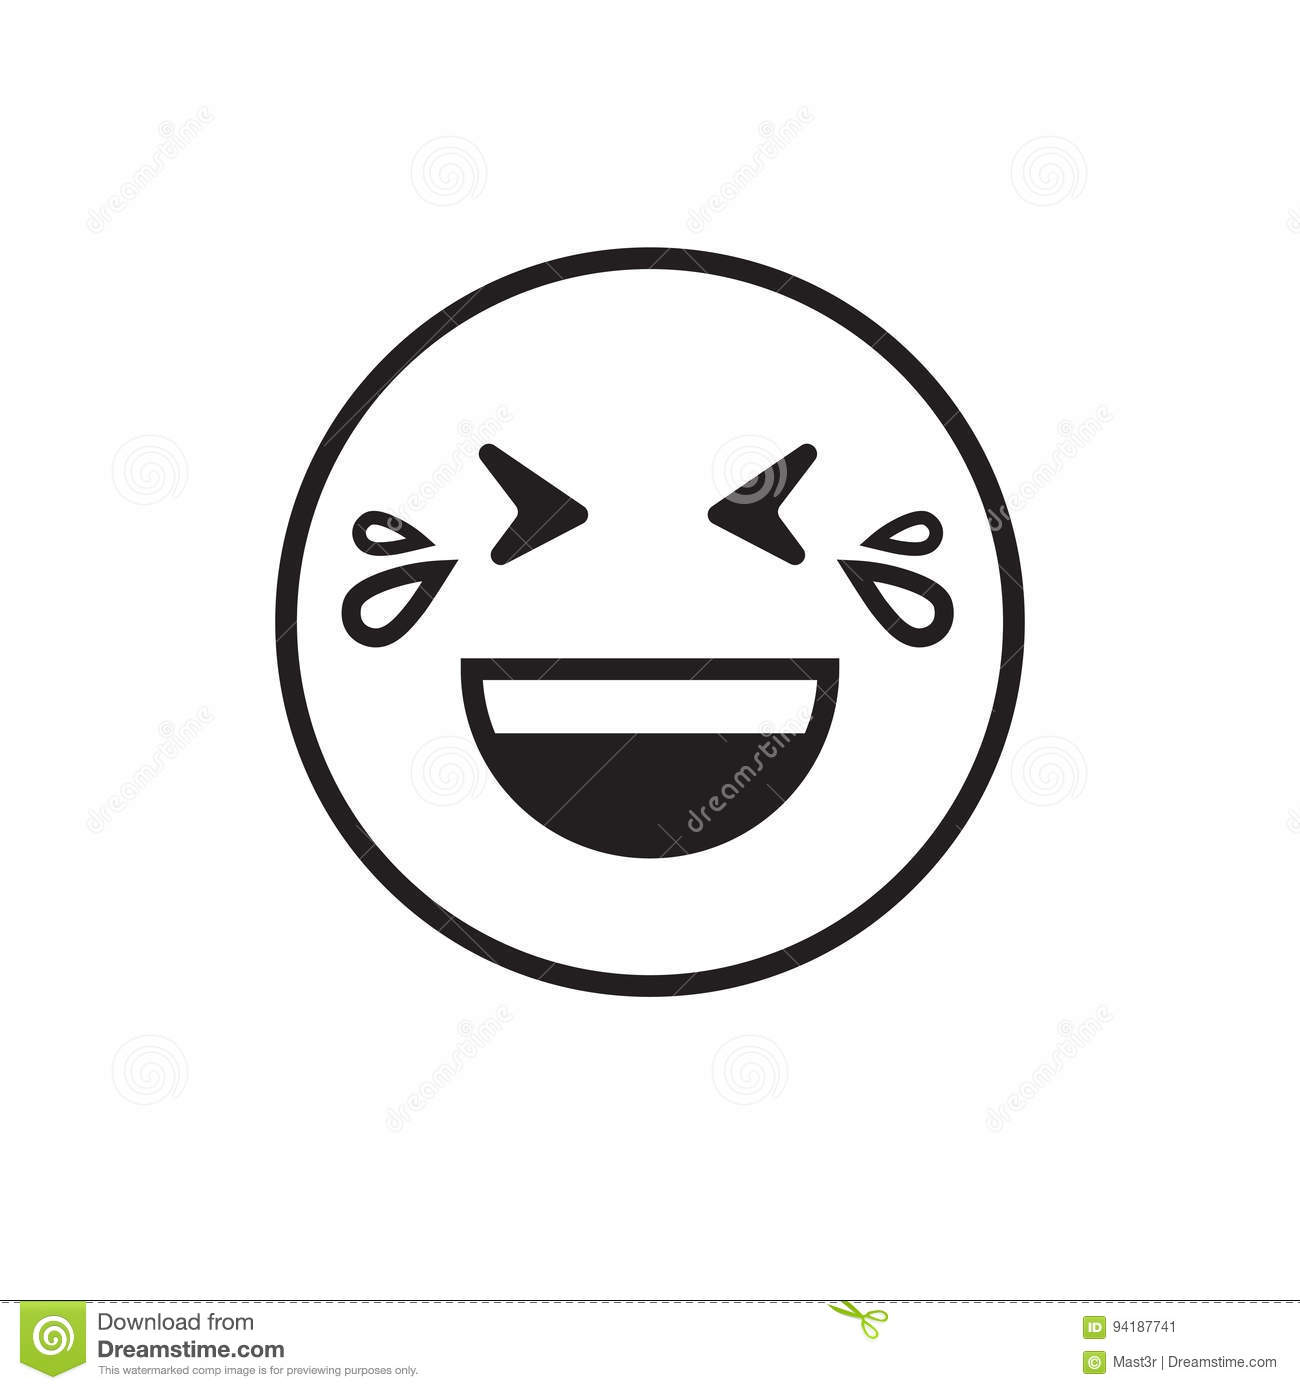 Smiling Emoticon With Open Mouth And Smiling Eyes Vector